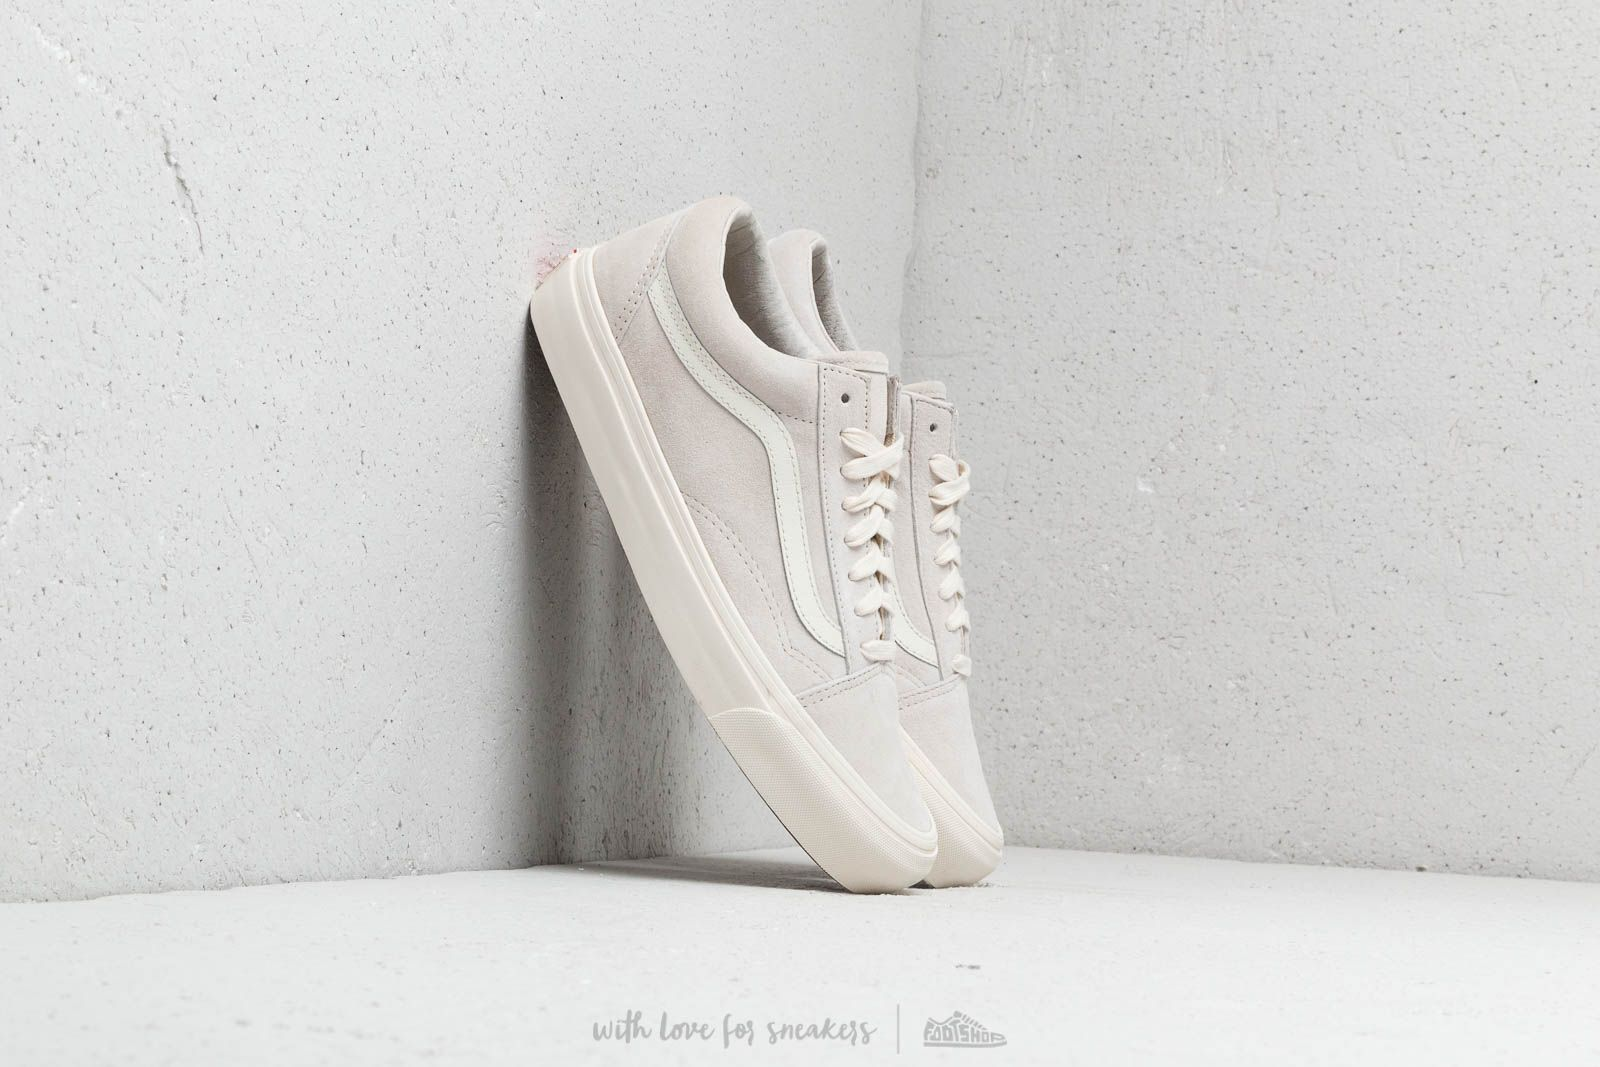 Vans OG Old Skool Lx (Leather/ Suede)